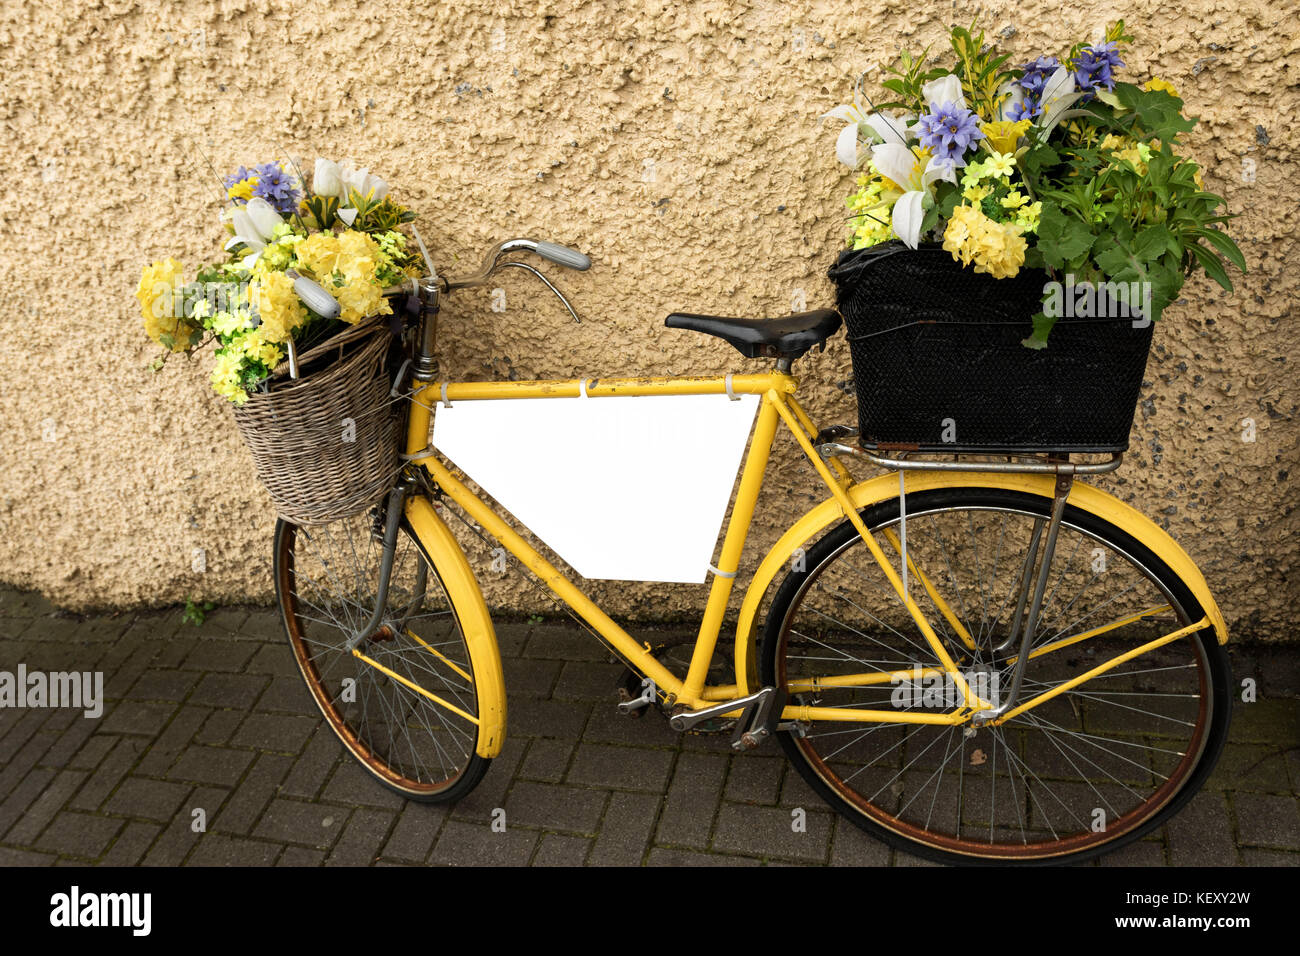 Yellow bicycle with baskets of flowers against yellow wall as advertising vehicle with plain area for additional - Stock Image